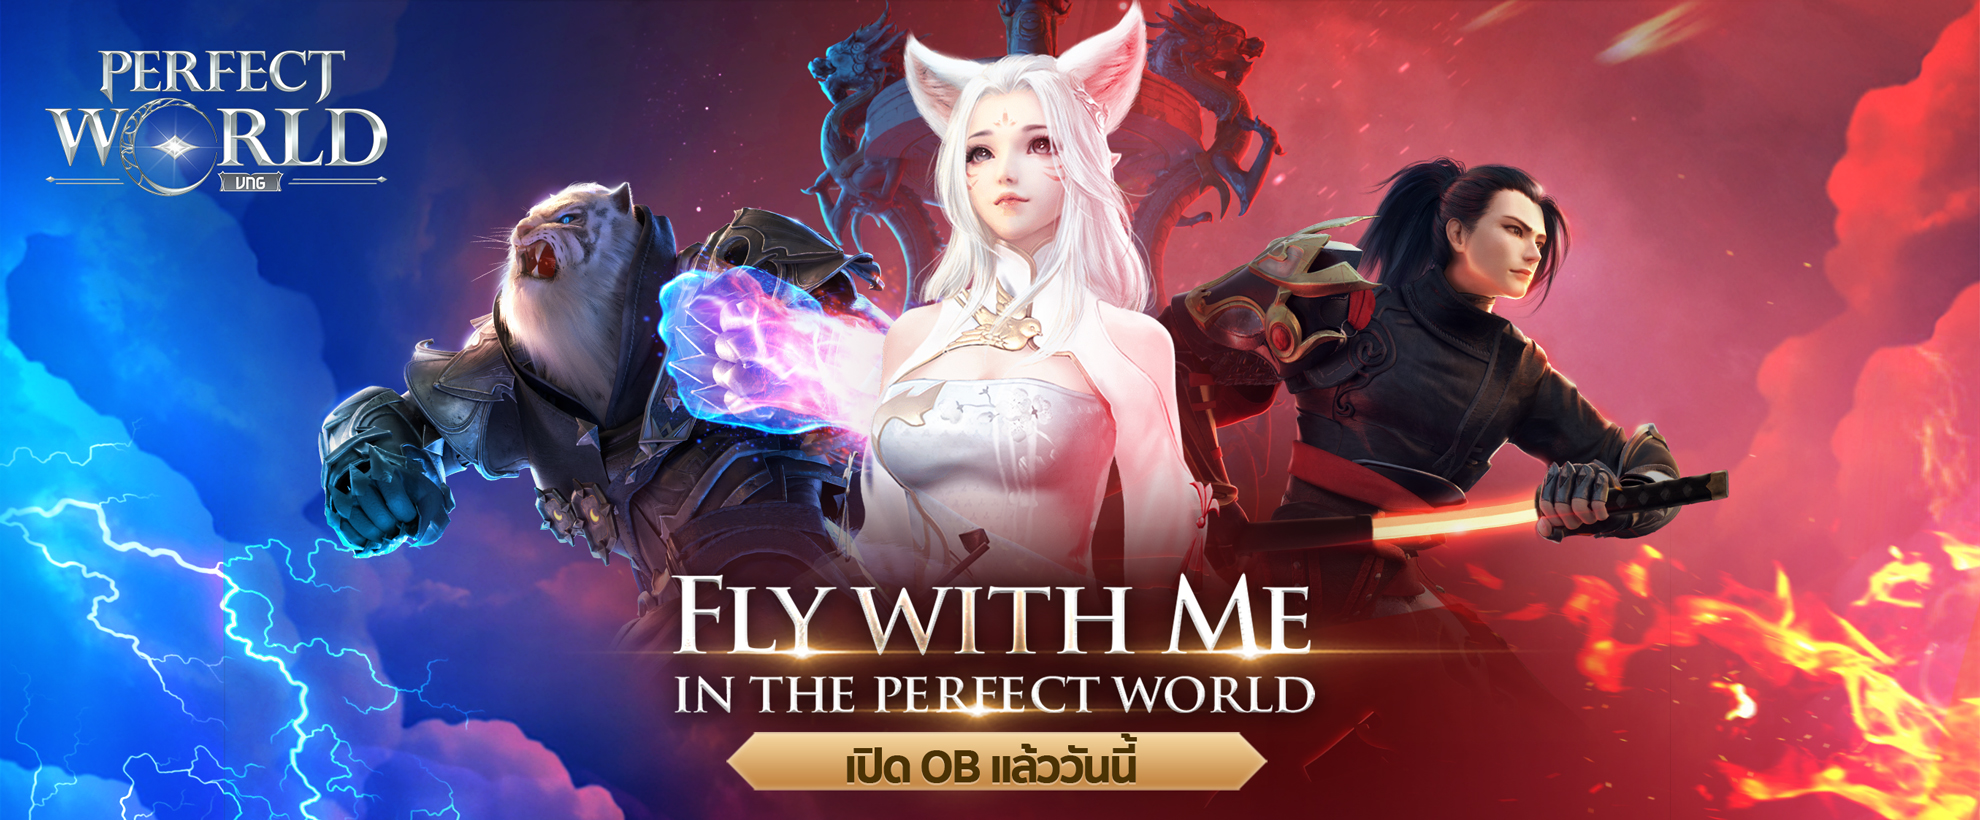 Perfect World VNG – Fly With Me